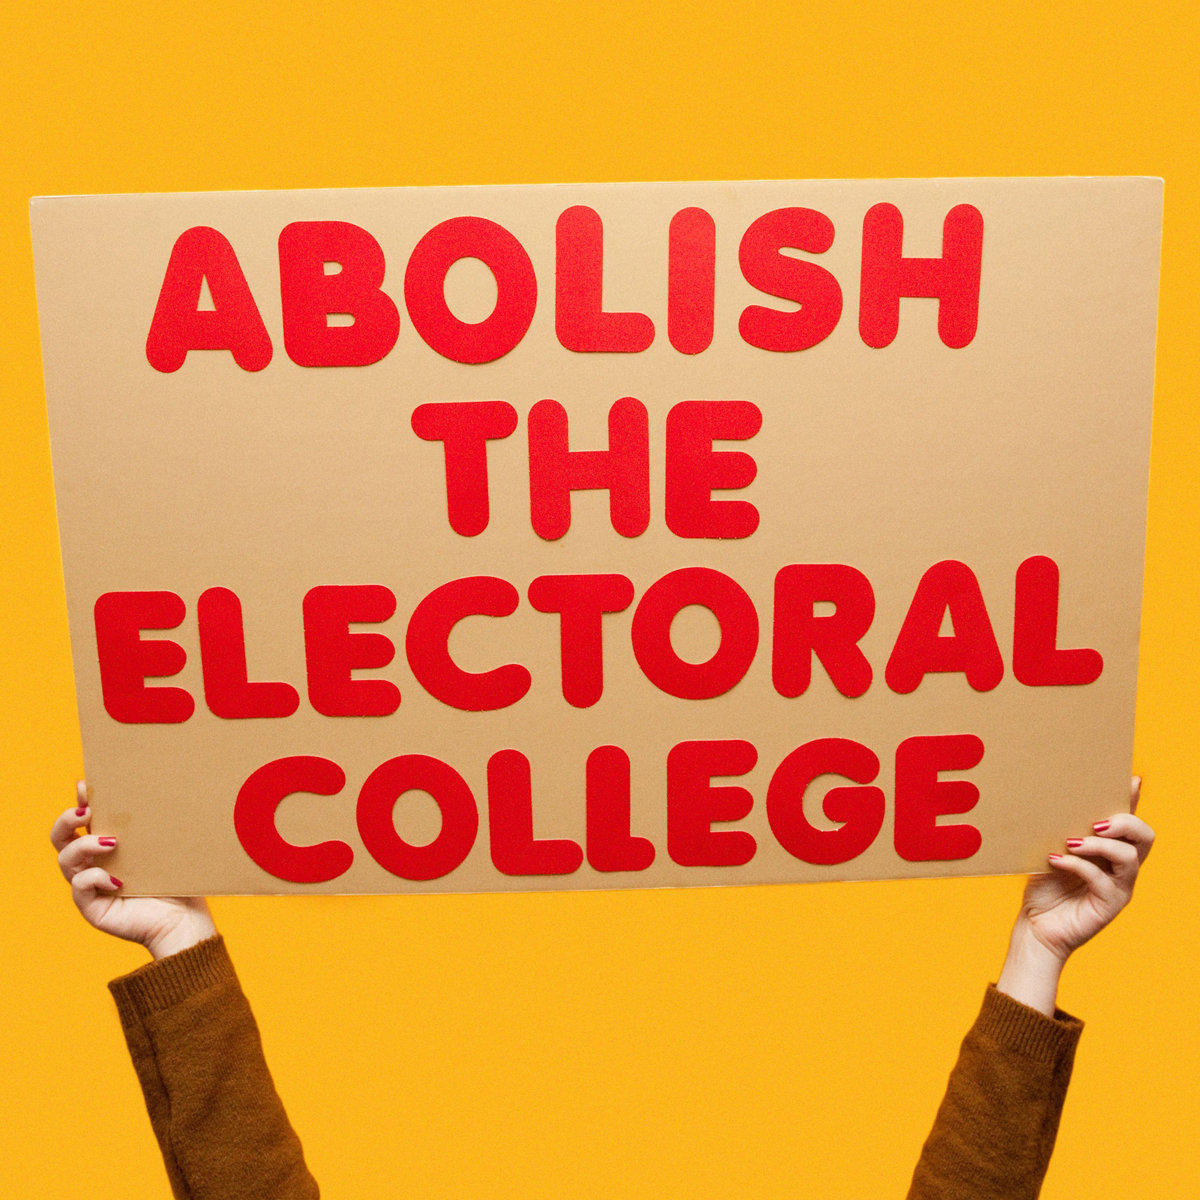 45 Protest Signs_Brandon and Olivia Locher_21_Abolish The Electoral College